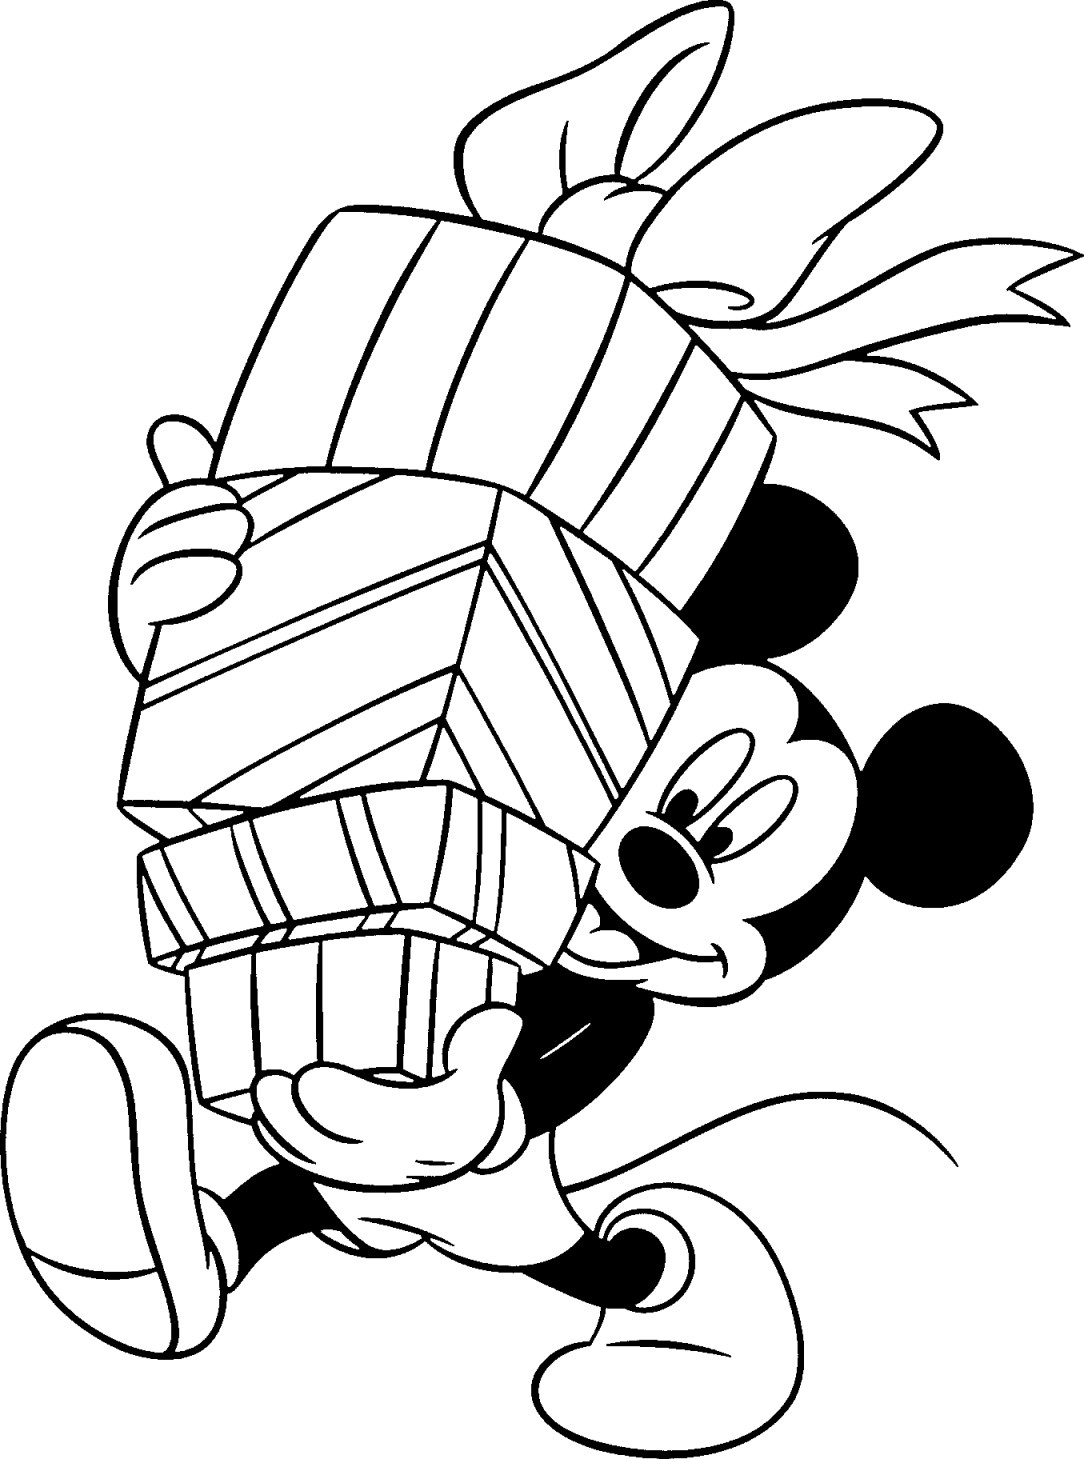 mickey mouse printable coloring pages mickey mouse christmas coloring pages to download and mickey pages coloring printable mouse